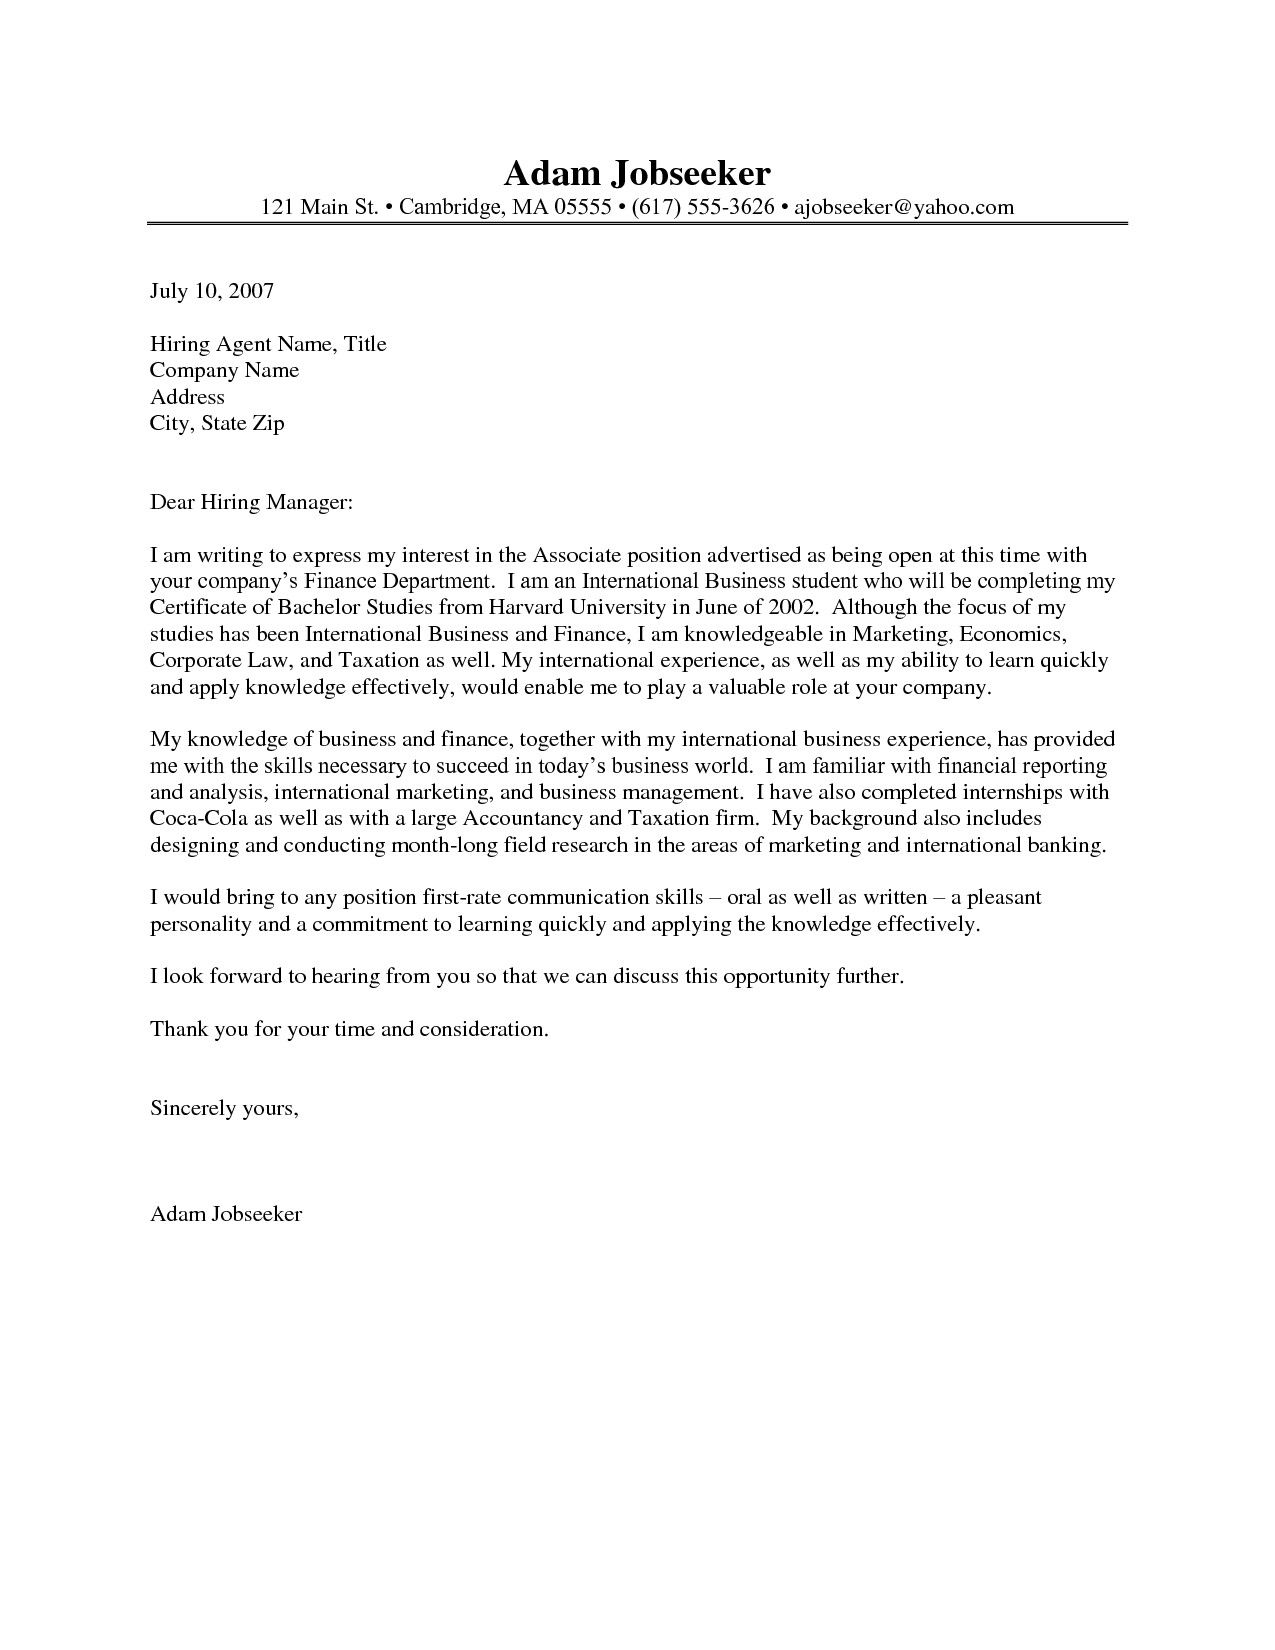 Pin by Waldwert Site on Resume Formats | Cover letter for ...